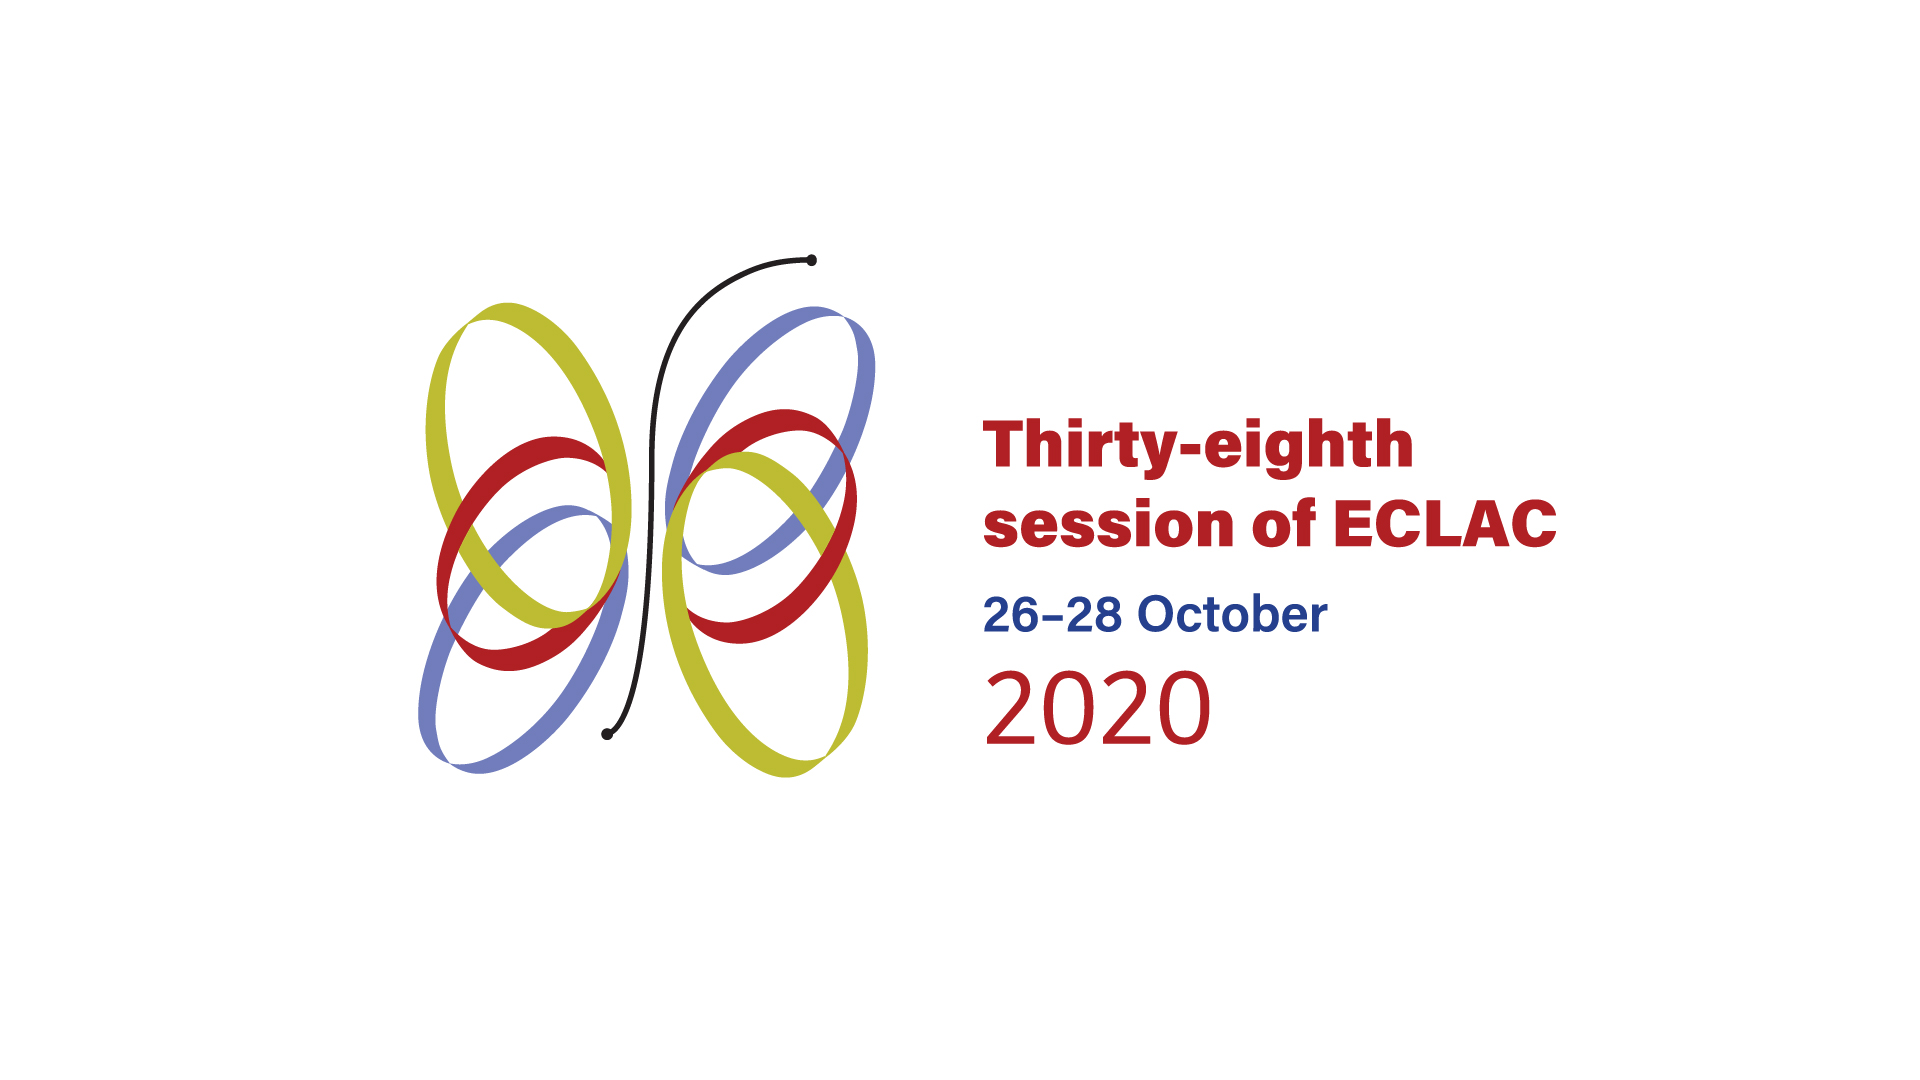 Thirty-eighth Session of ECLAC's logo